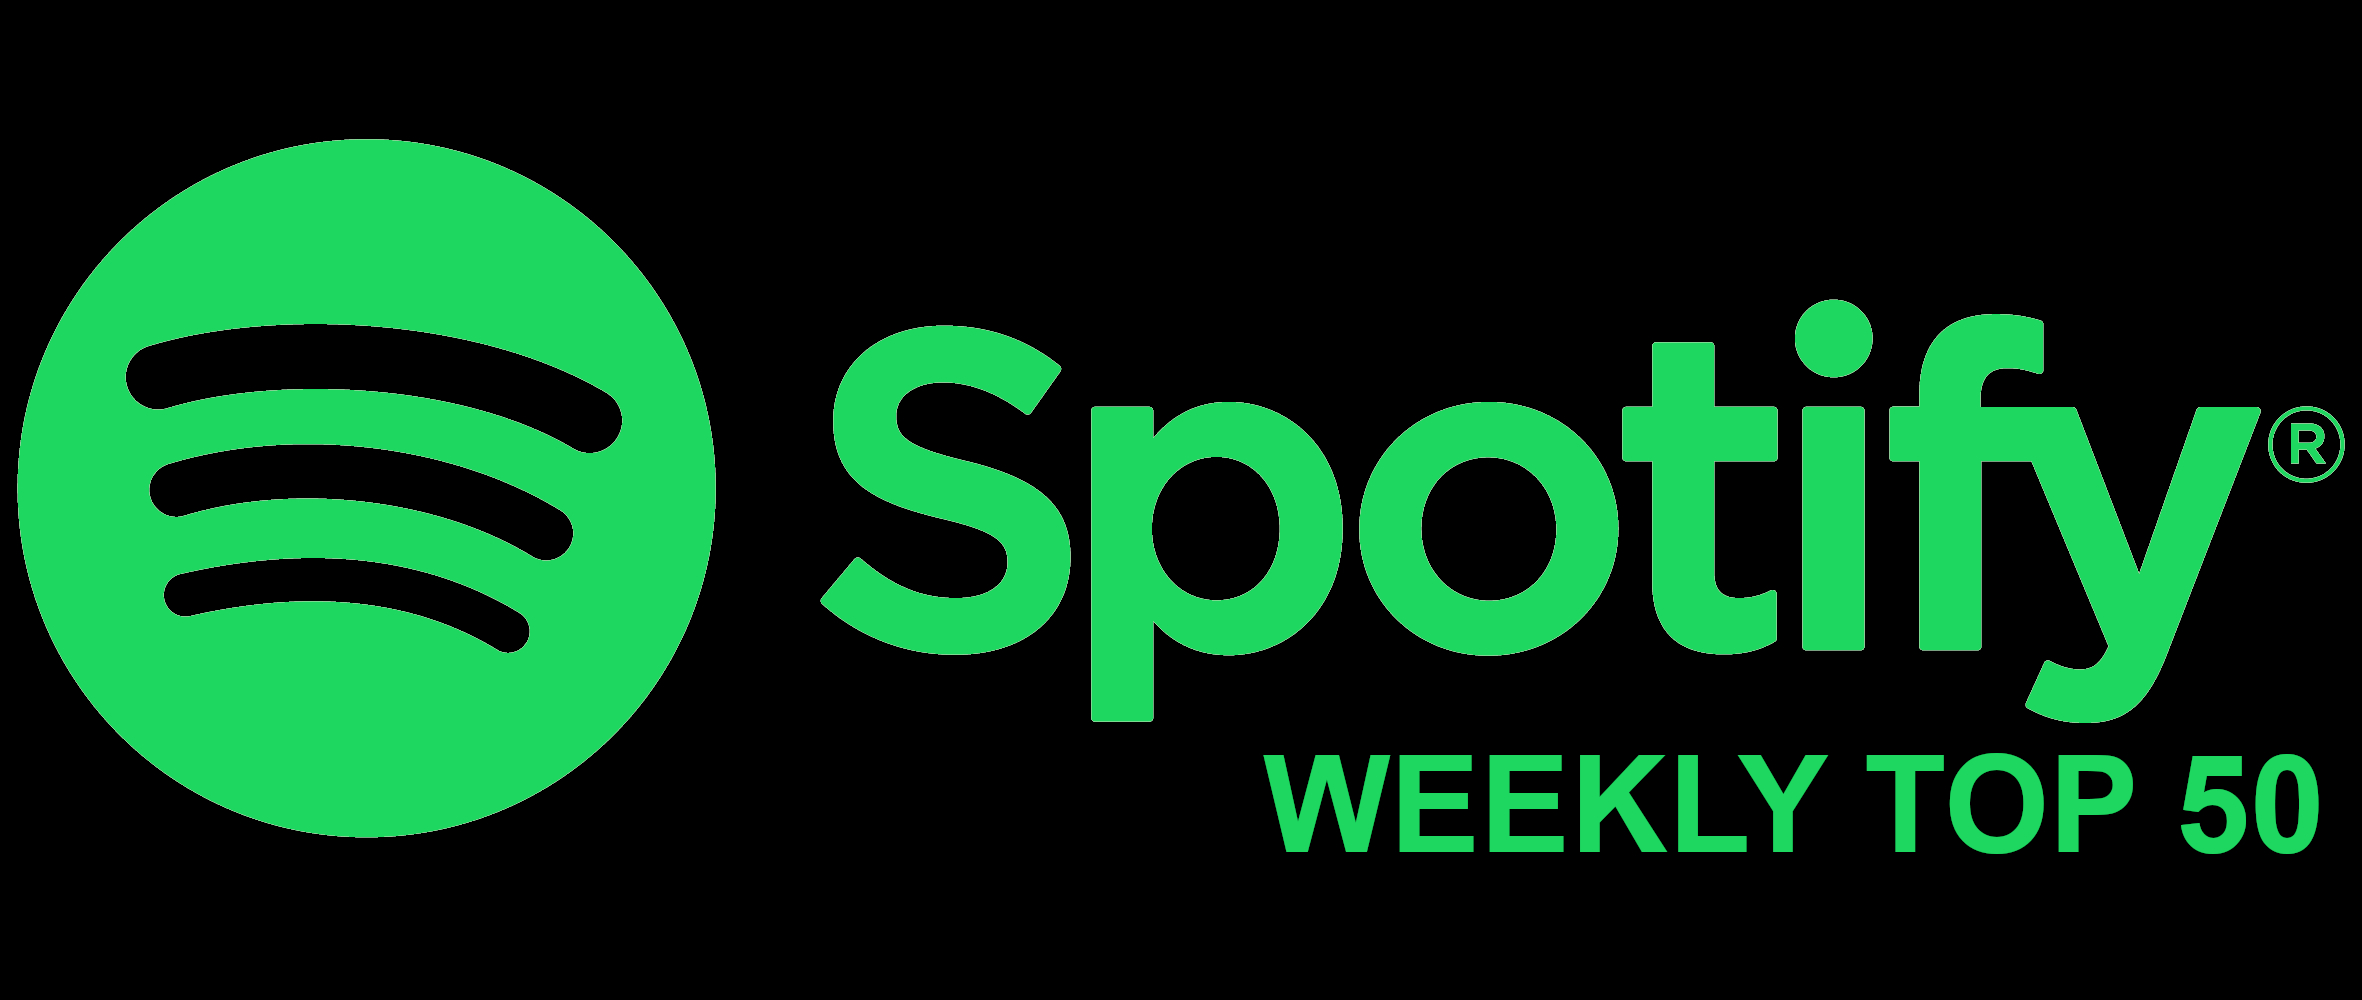 【Spotify Charts】 WEEKLY TOP 50